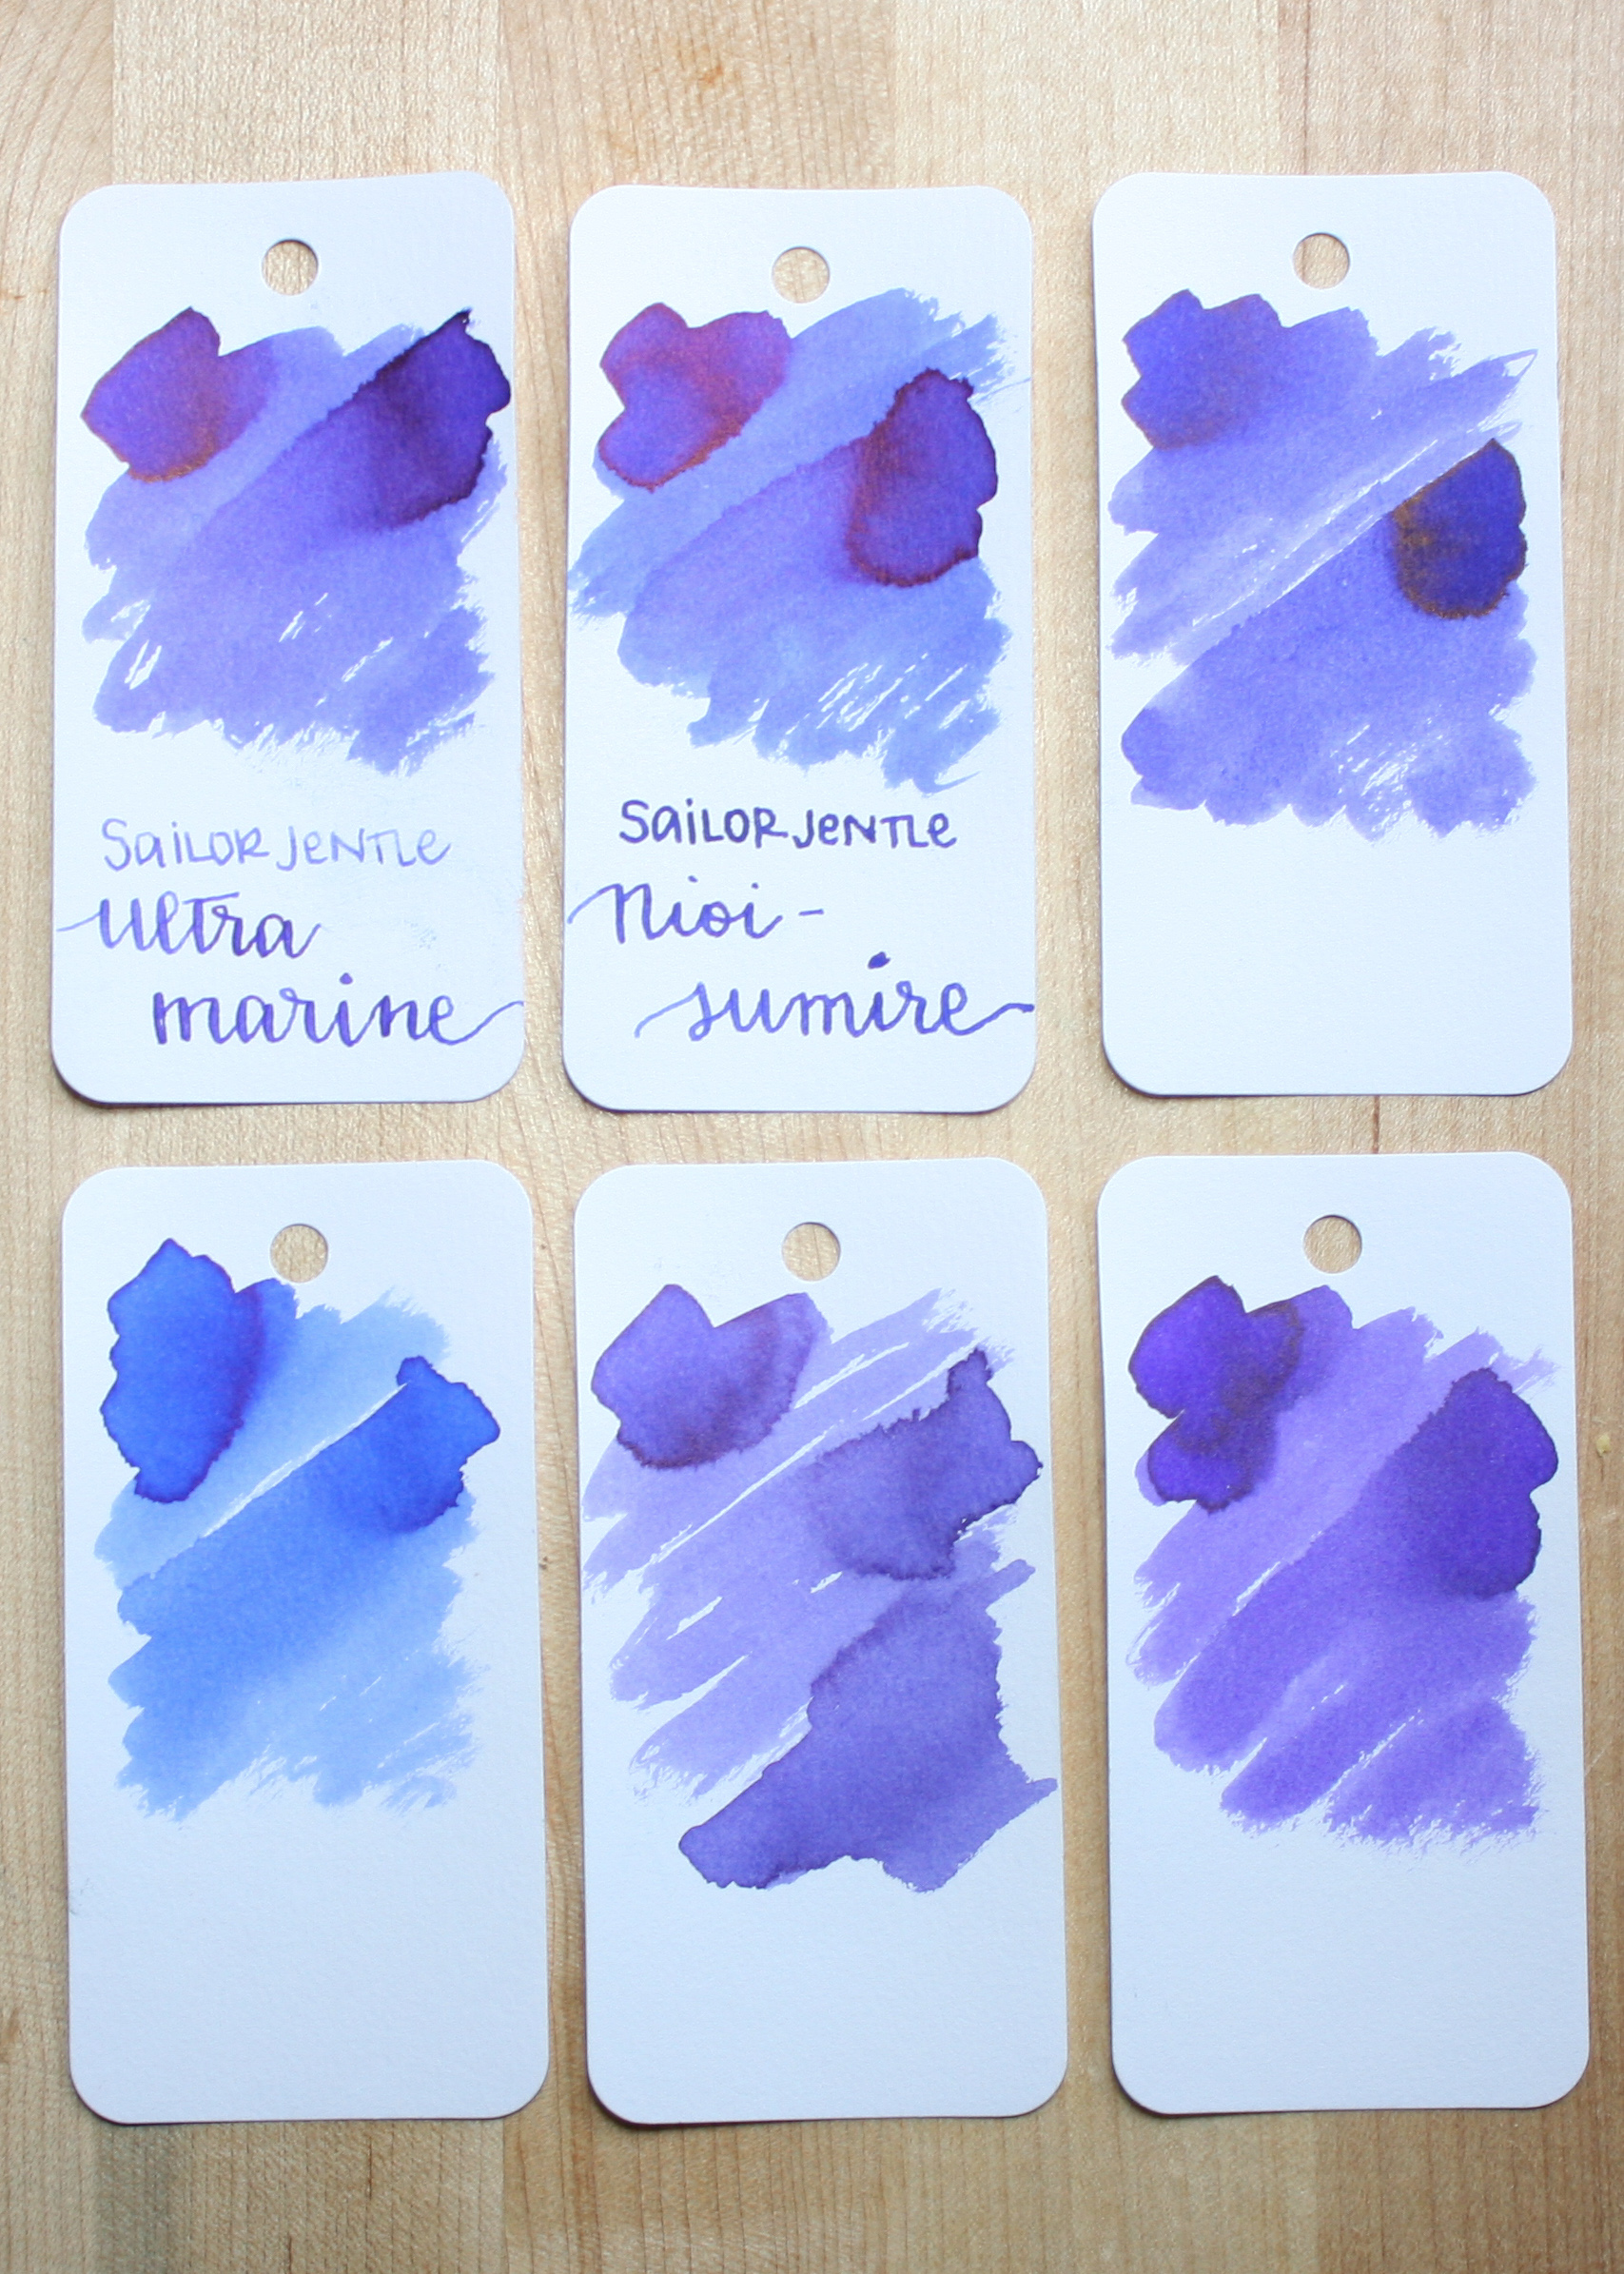 Similar inks: - On the top, left to right, are: Sailor Jentle Ultra Marine, Sailor Jentle Nioi-sumire, and Diamine Imperial Blue. Bottom row: Pilot Iroshizuku Ajisai, Sheaffer Purple, and Diamine Violet. Sailor Jentle Ultra Marine is the closest, but it's a little bit more red than Nioi-sumire.